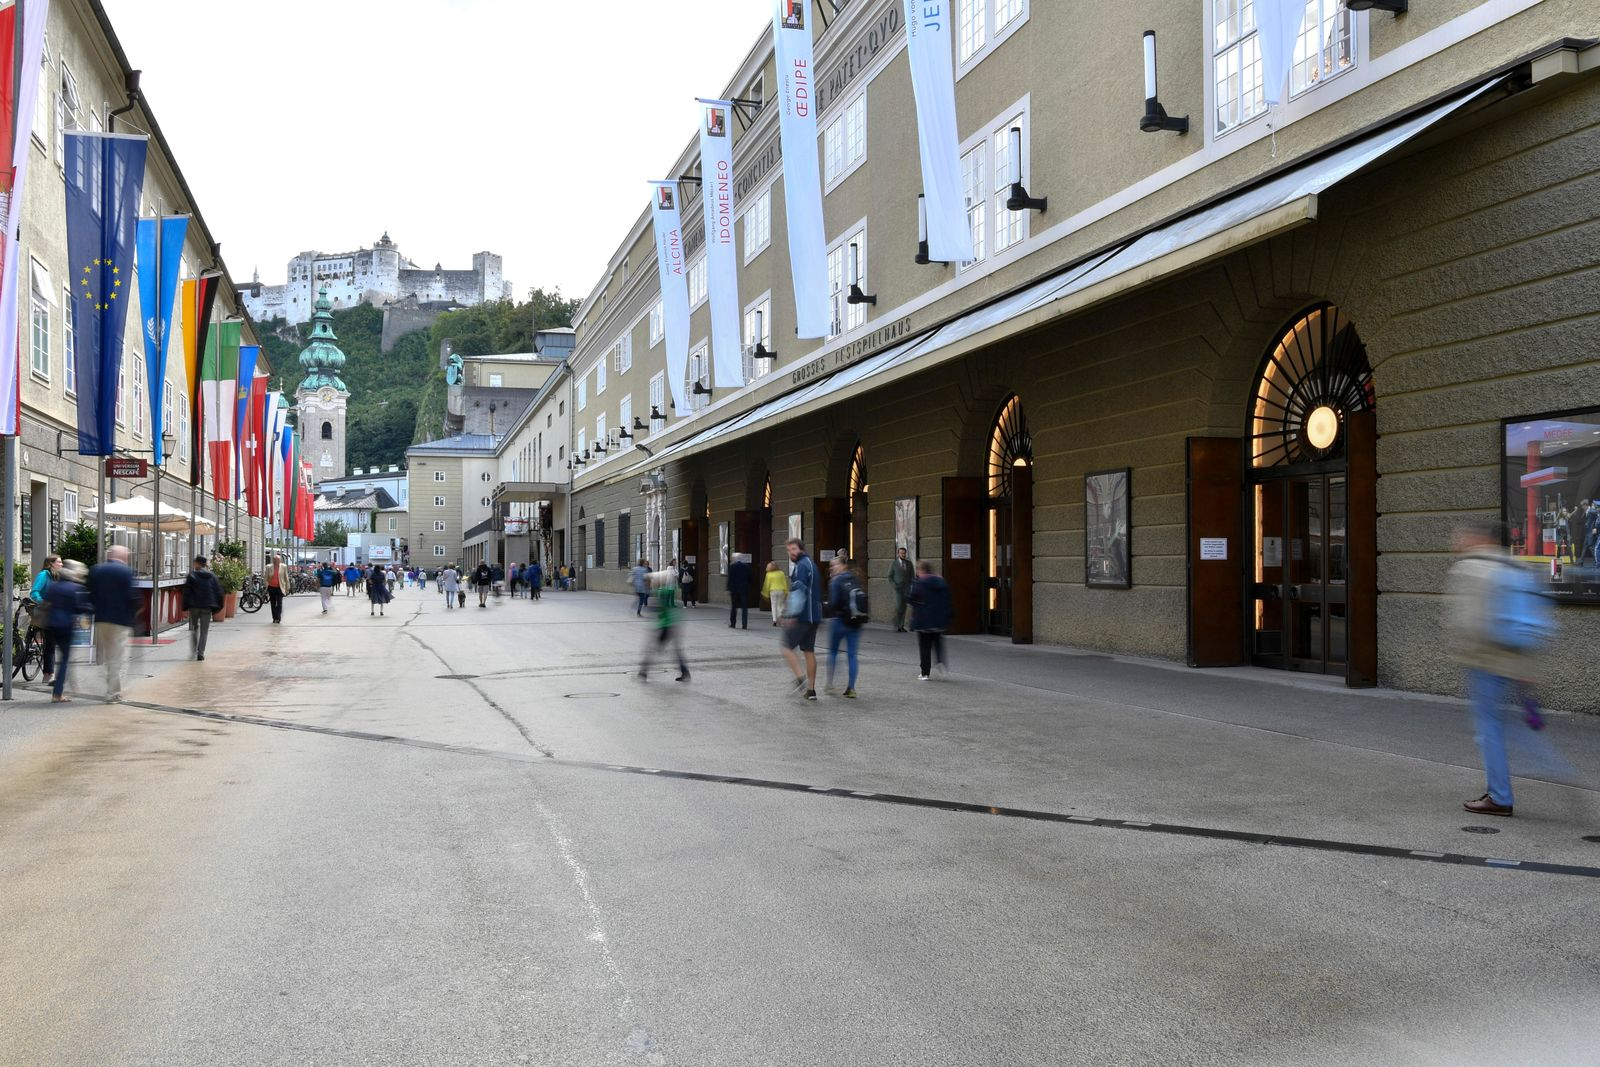 Out side view of the opera house , right, in Salzburg, Austria, Wednesday, Aug. 14, 2019 where singer Placido Domingo will perfom 'Luisa Miller' by Giuseppe Verdi. (AP Photo/Kerstin Joensson)